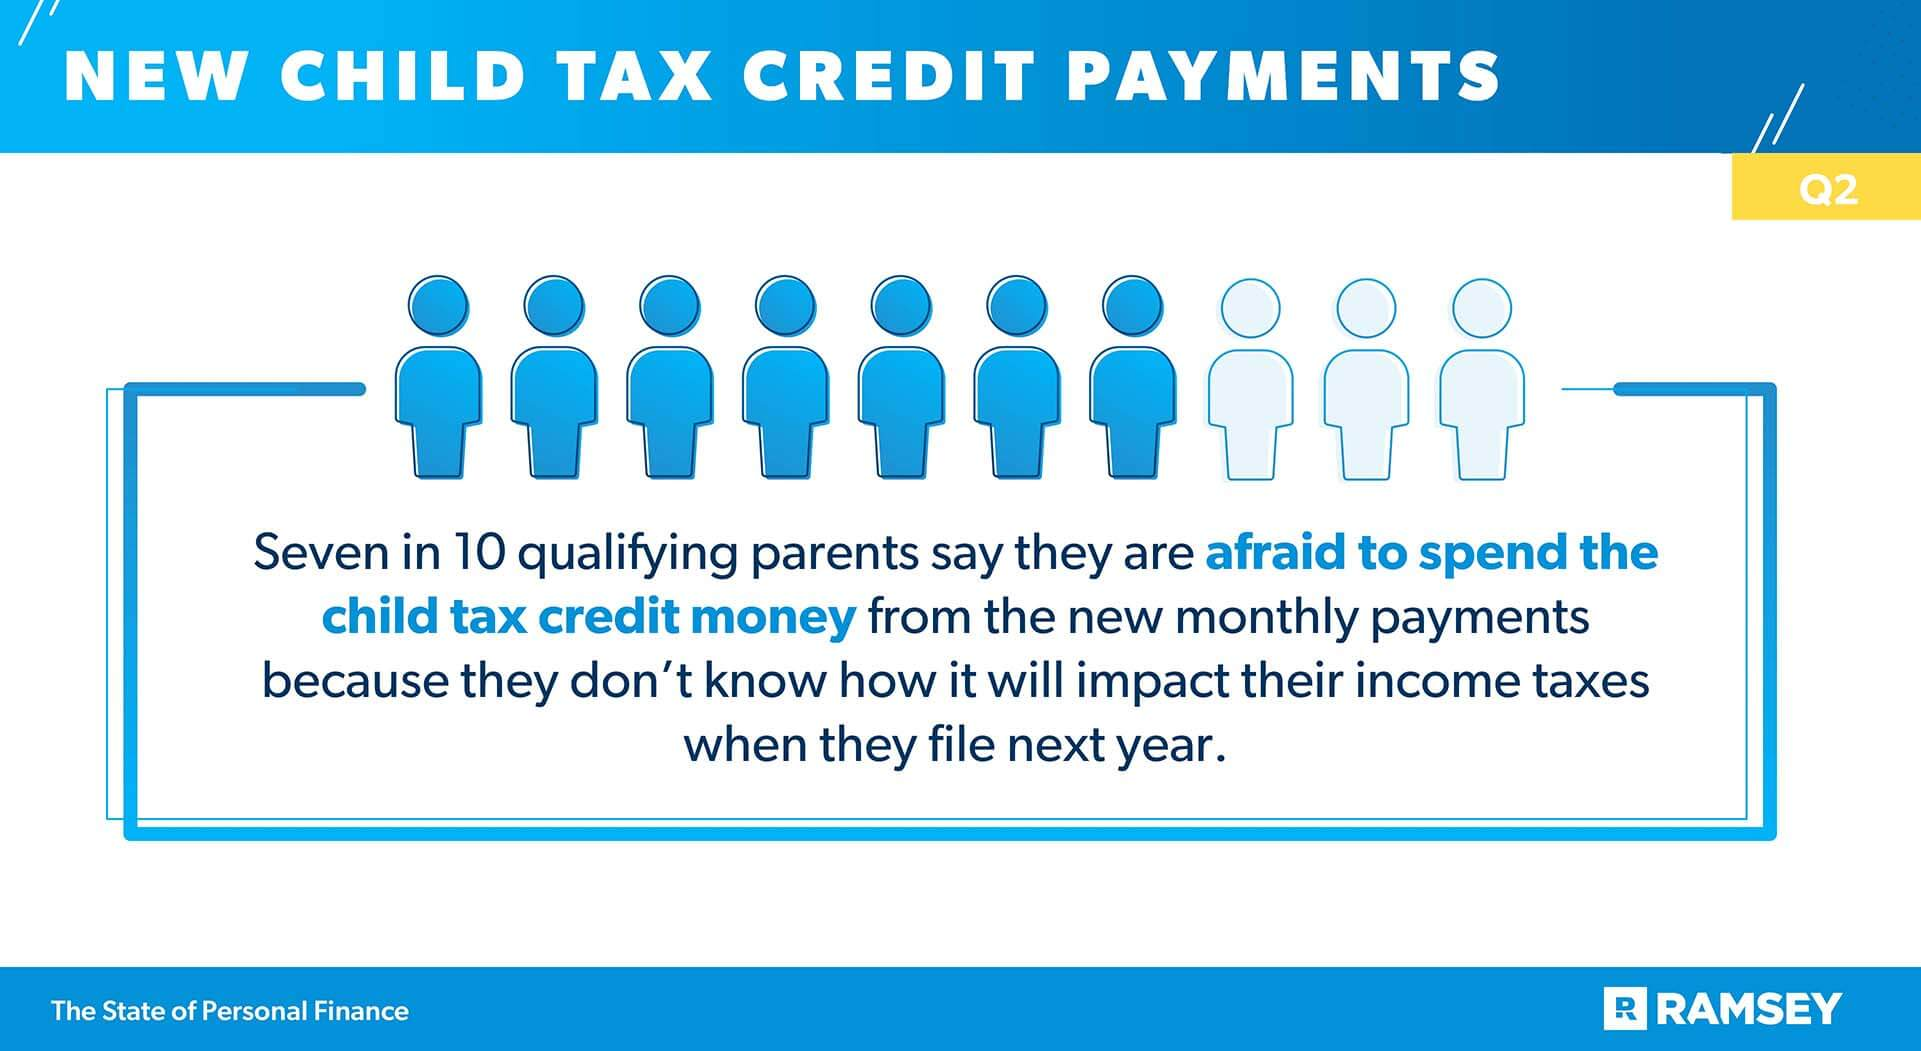 new child tax credit payments